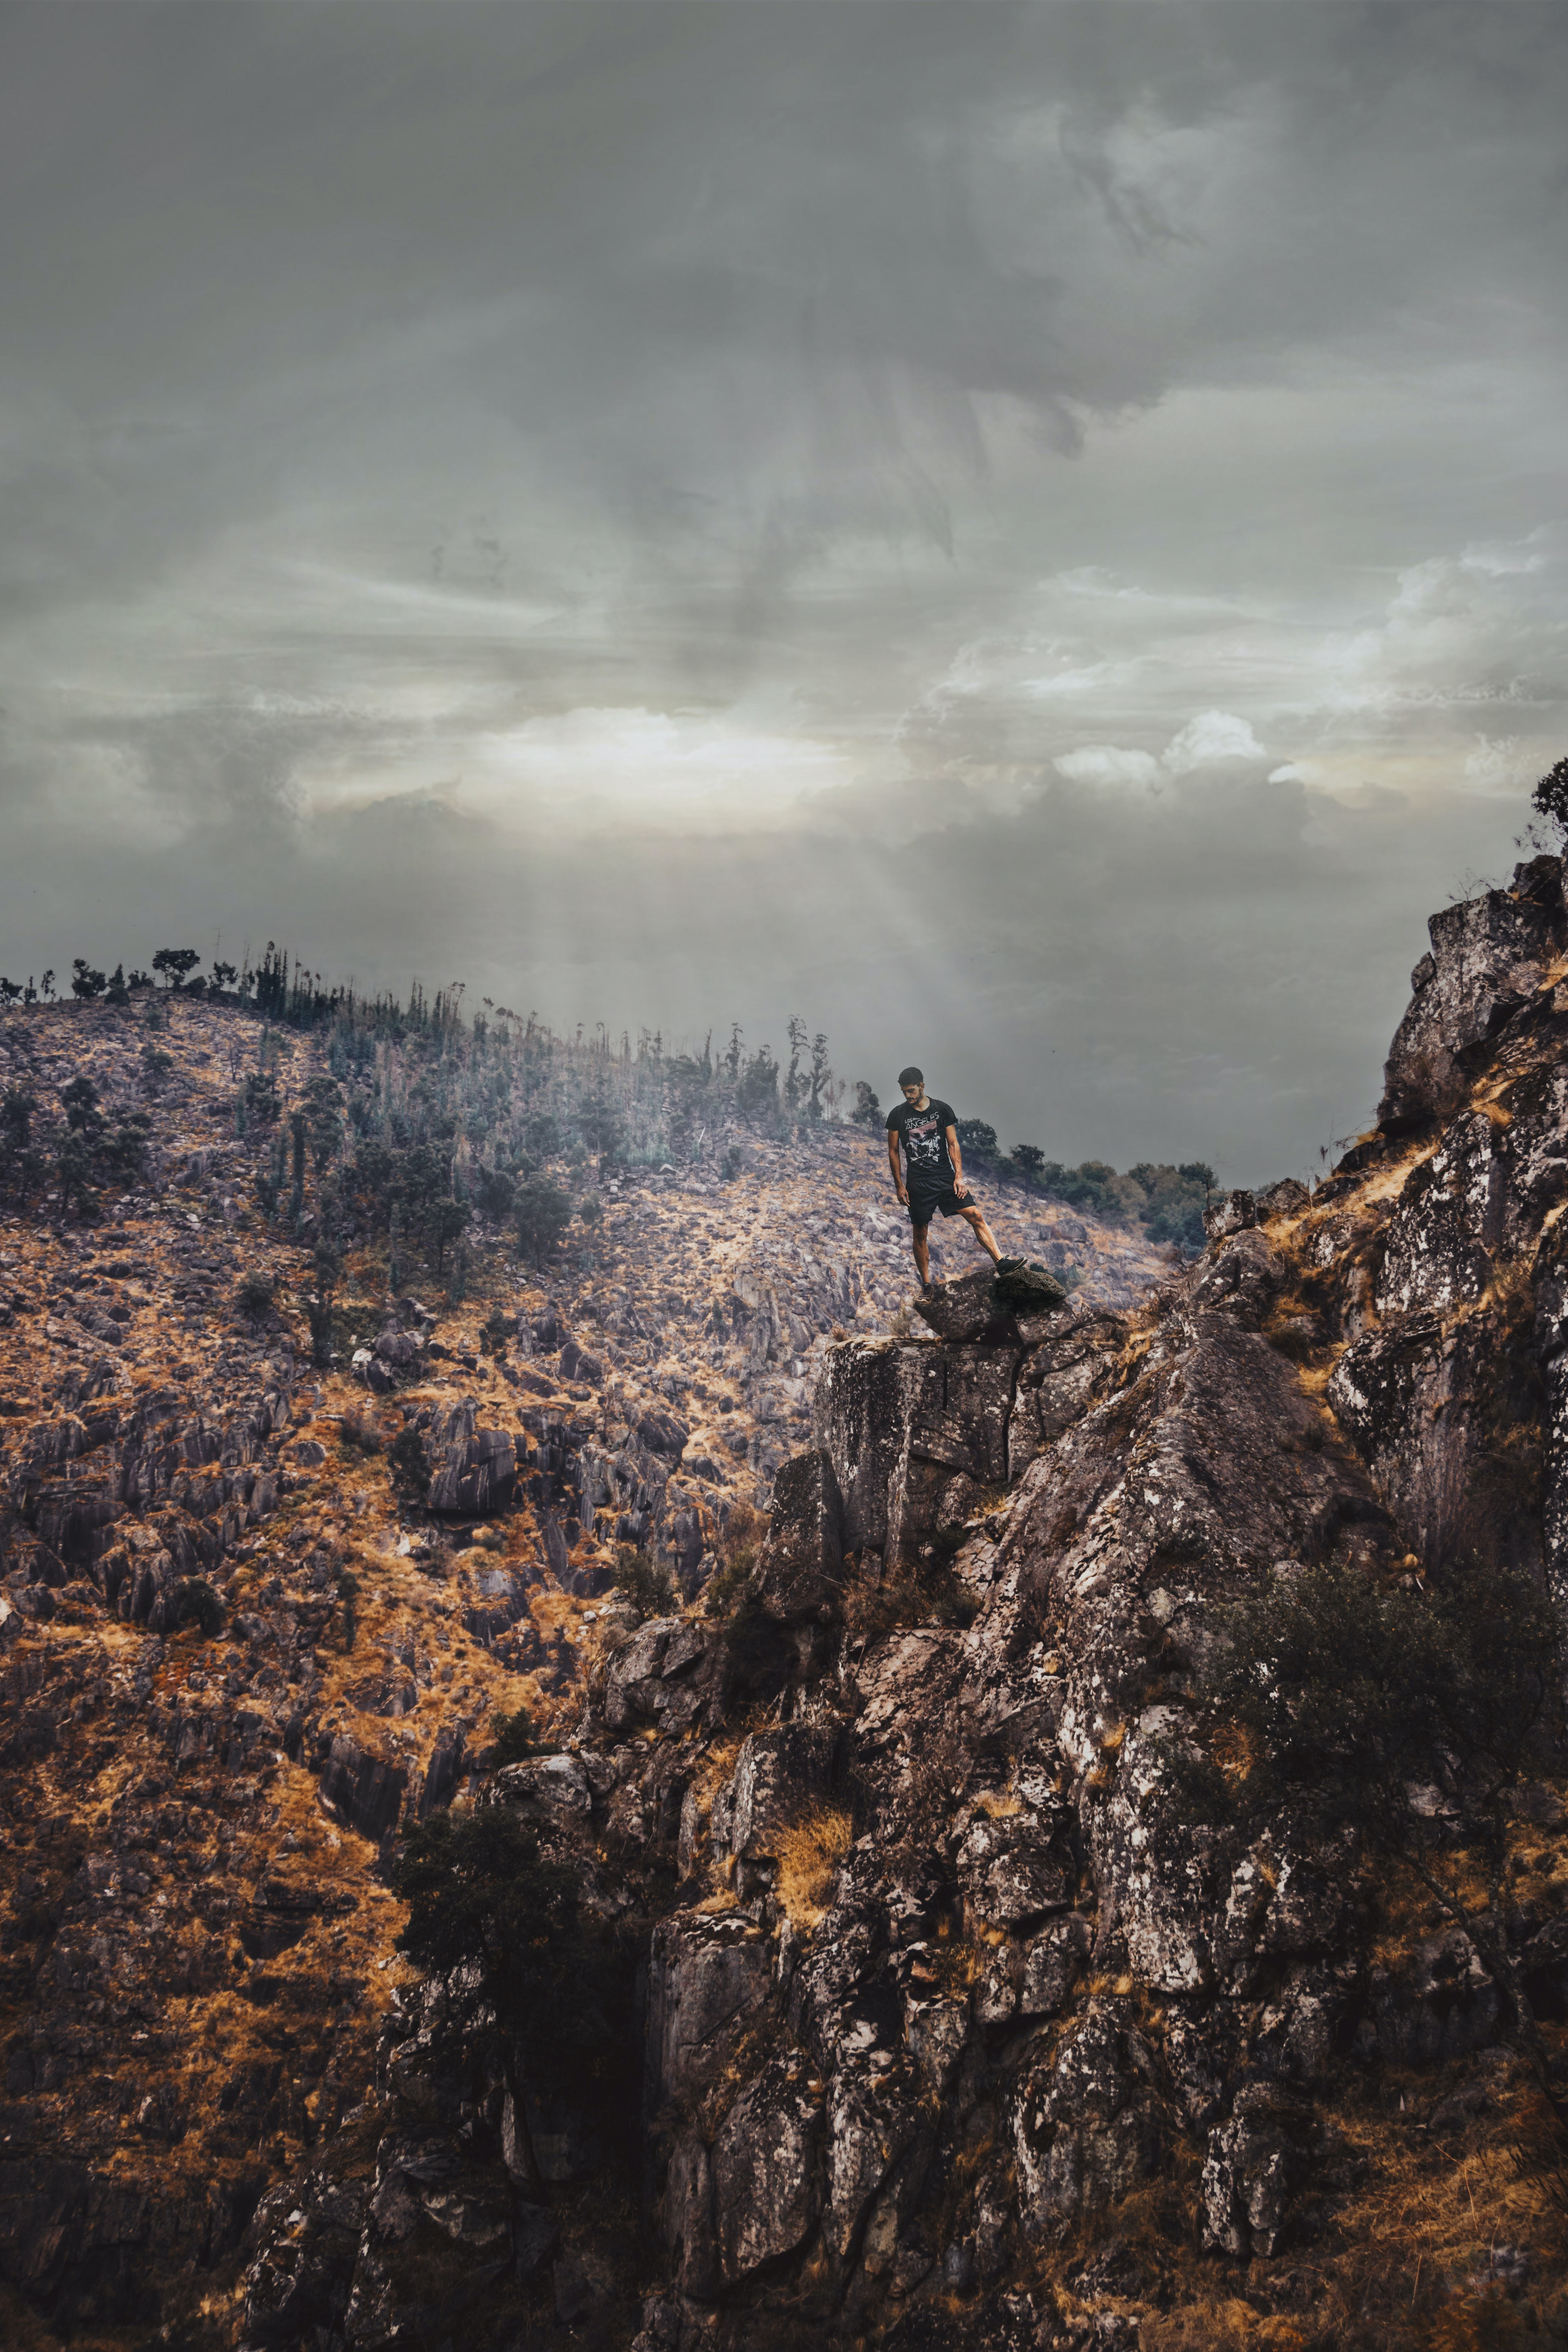 Extreme hiker stands on a rocky mountain ridge on a cloudy day